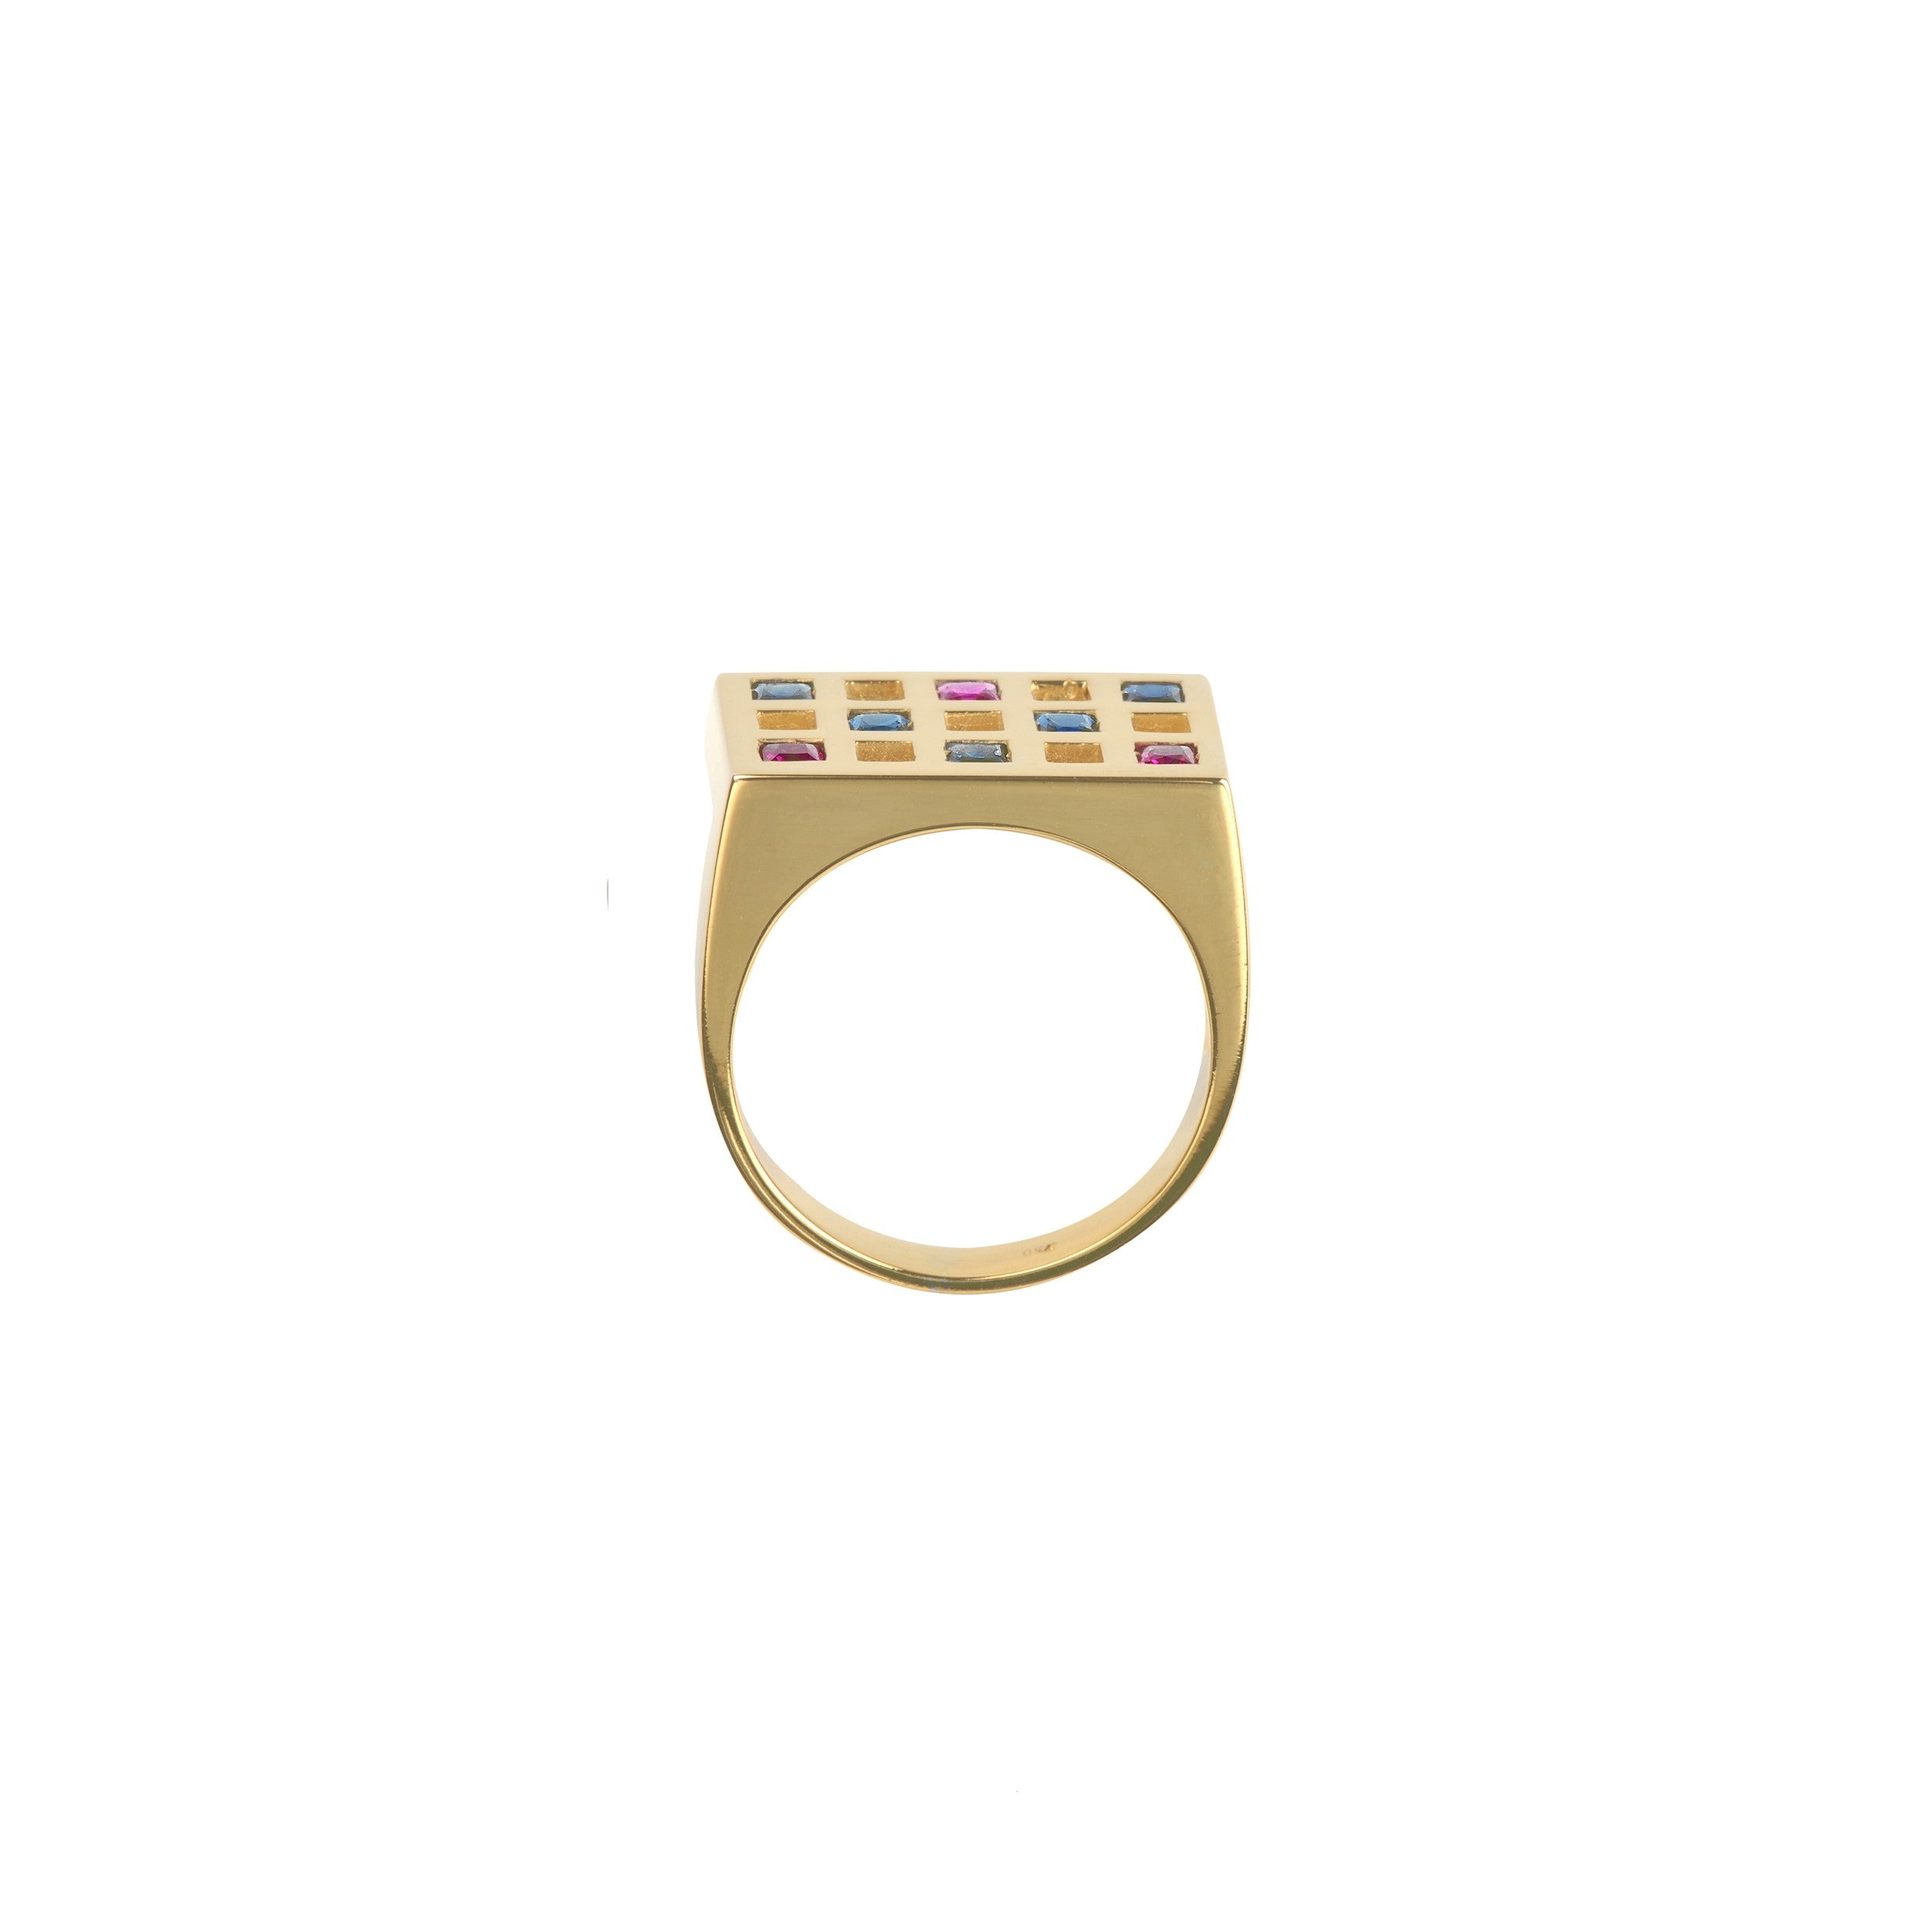 Czech Ring by Afew Jewels on OOSTOR.com